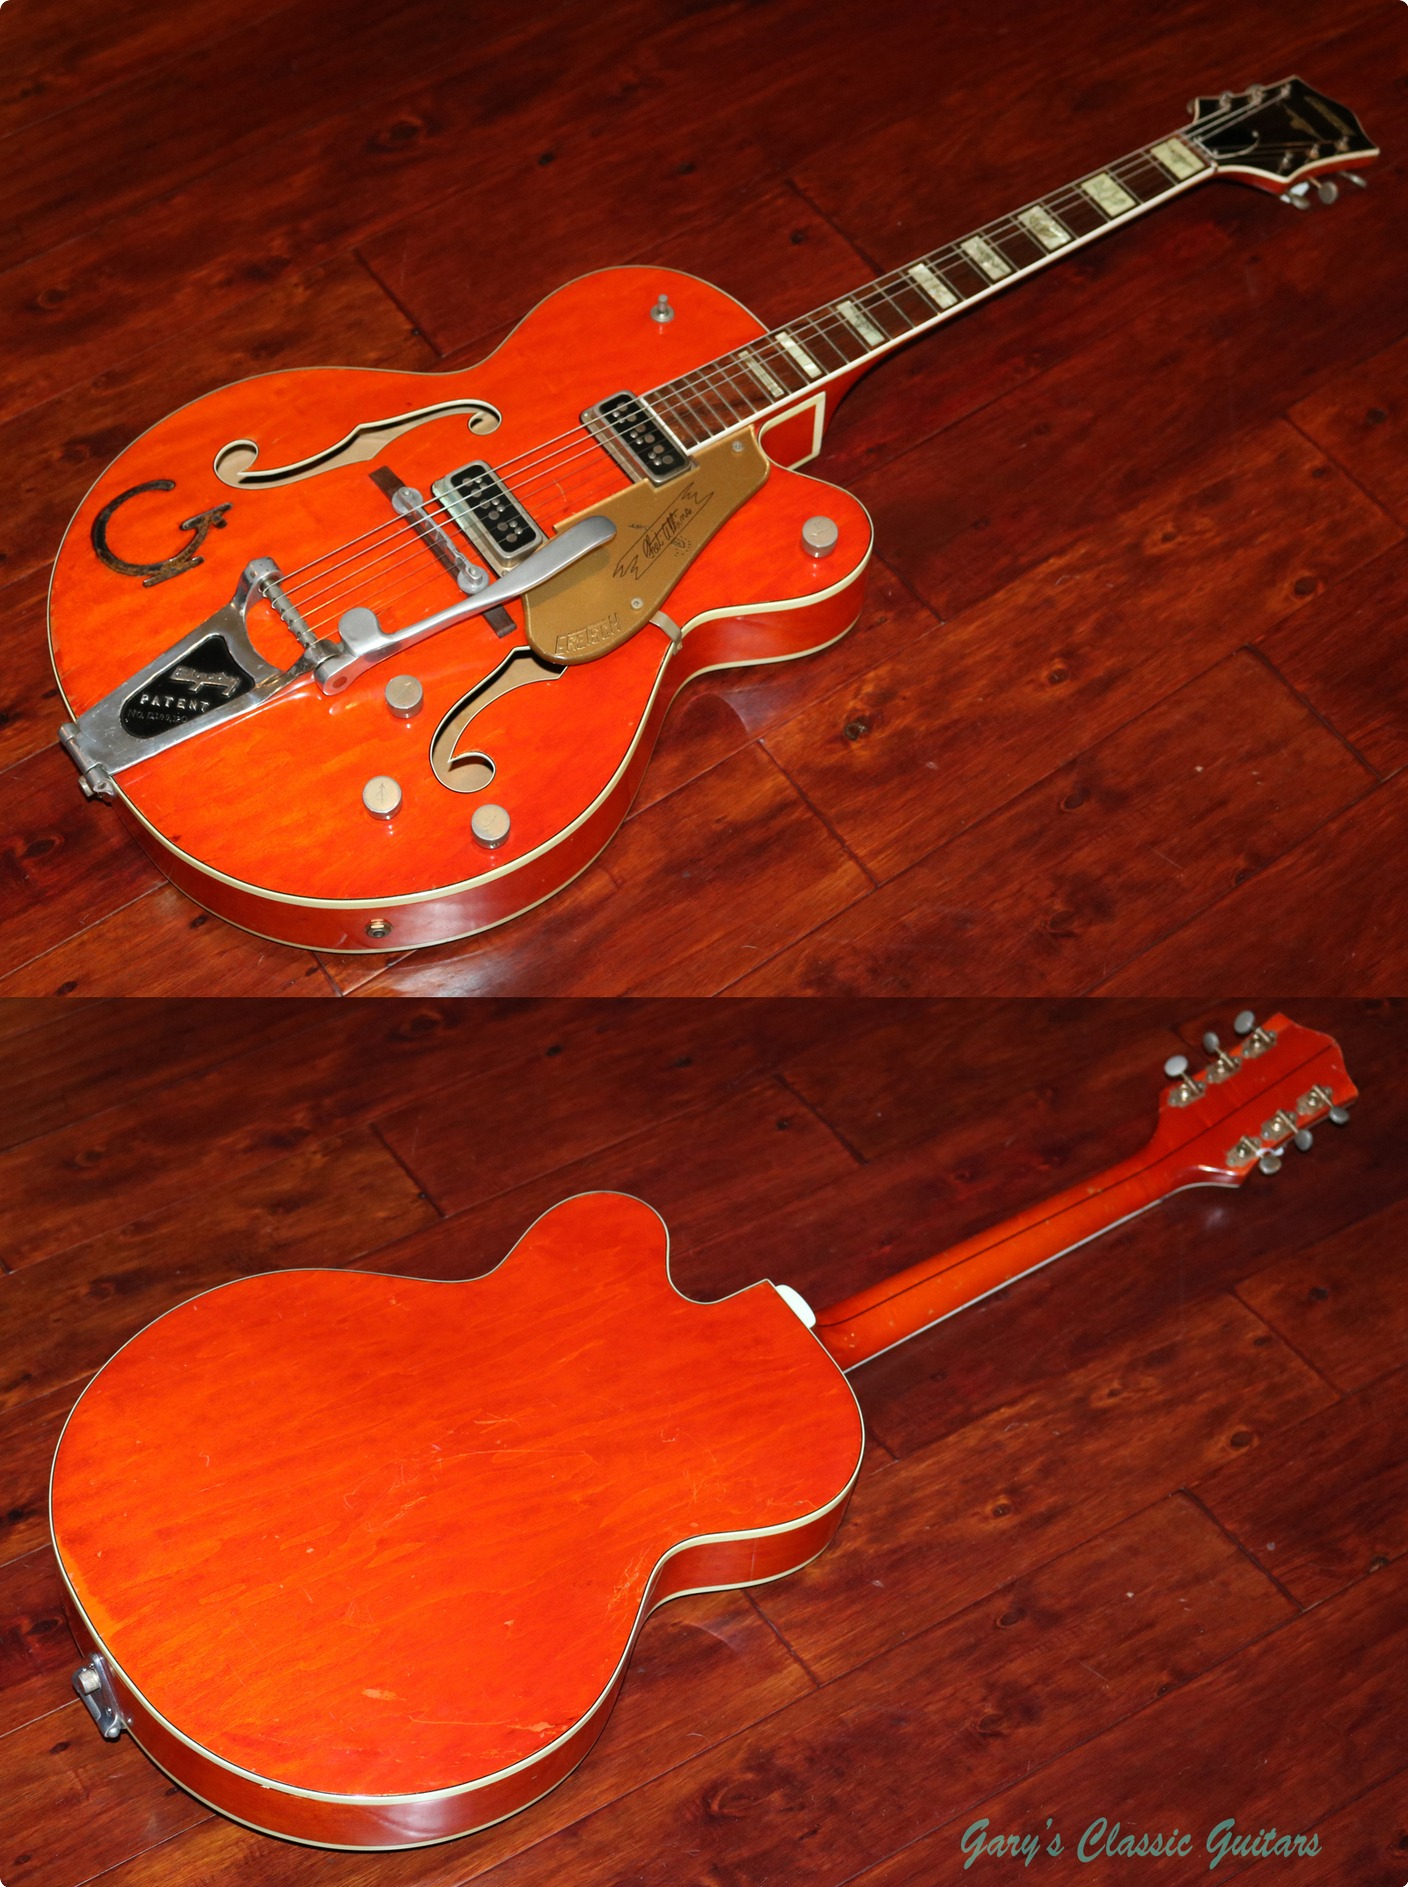 Gretsch 6120 For Sale : gretsch 6120 gre0361 1956 guitar for sale garys classic guitars ~ Hamham.info Haus und Dekorationen